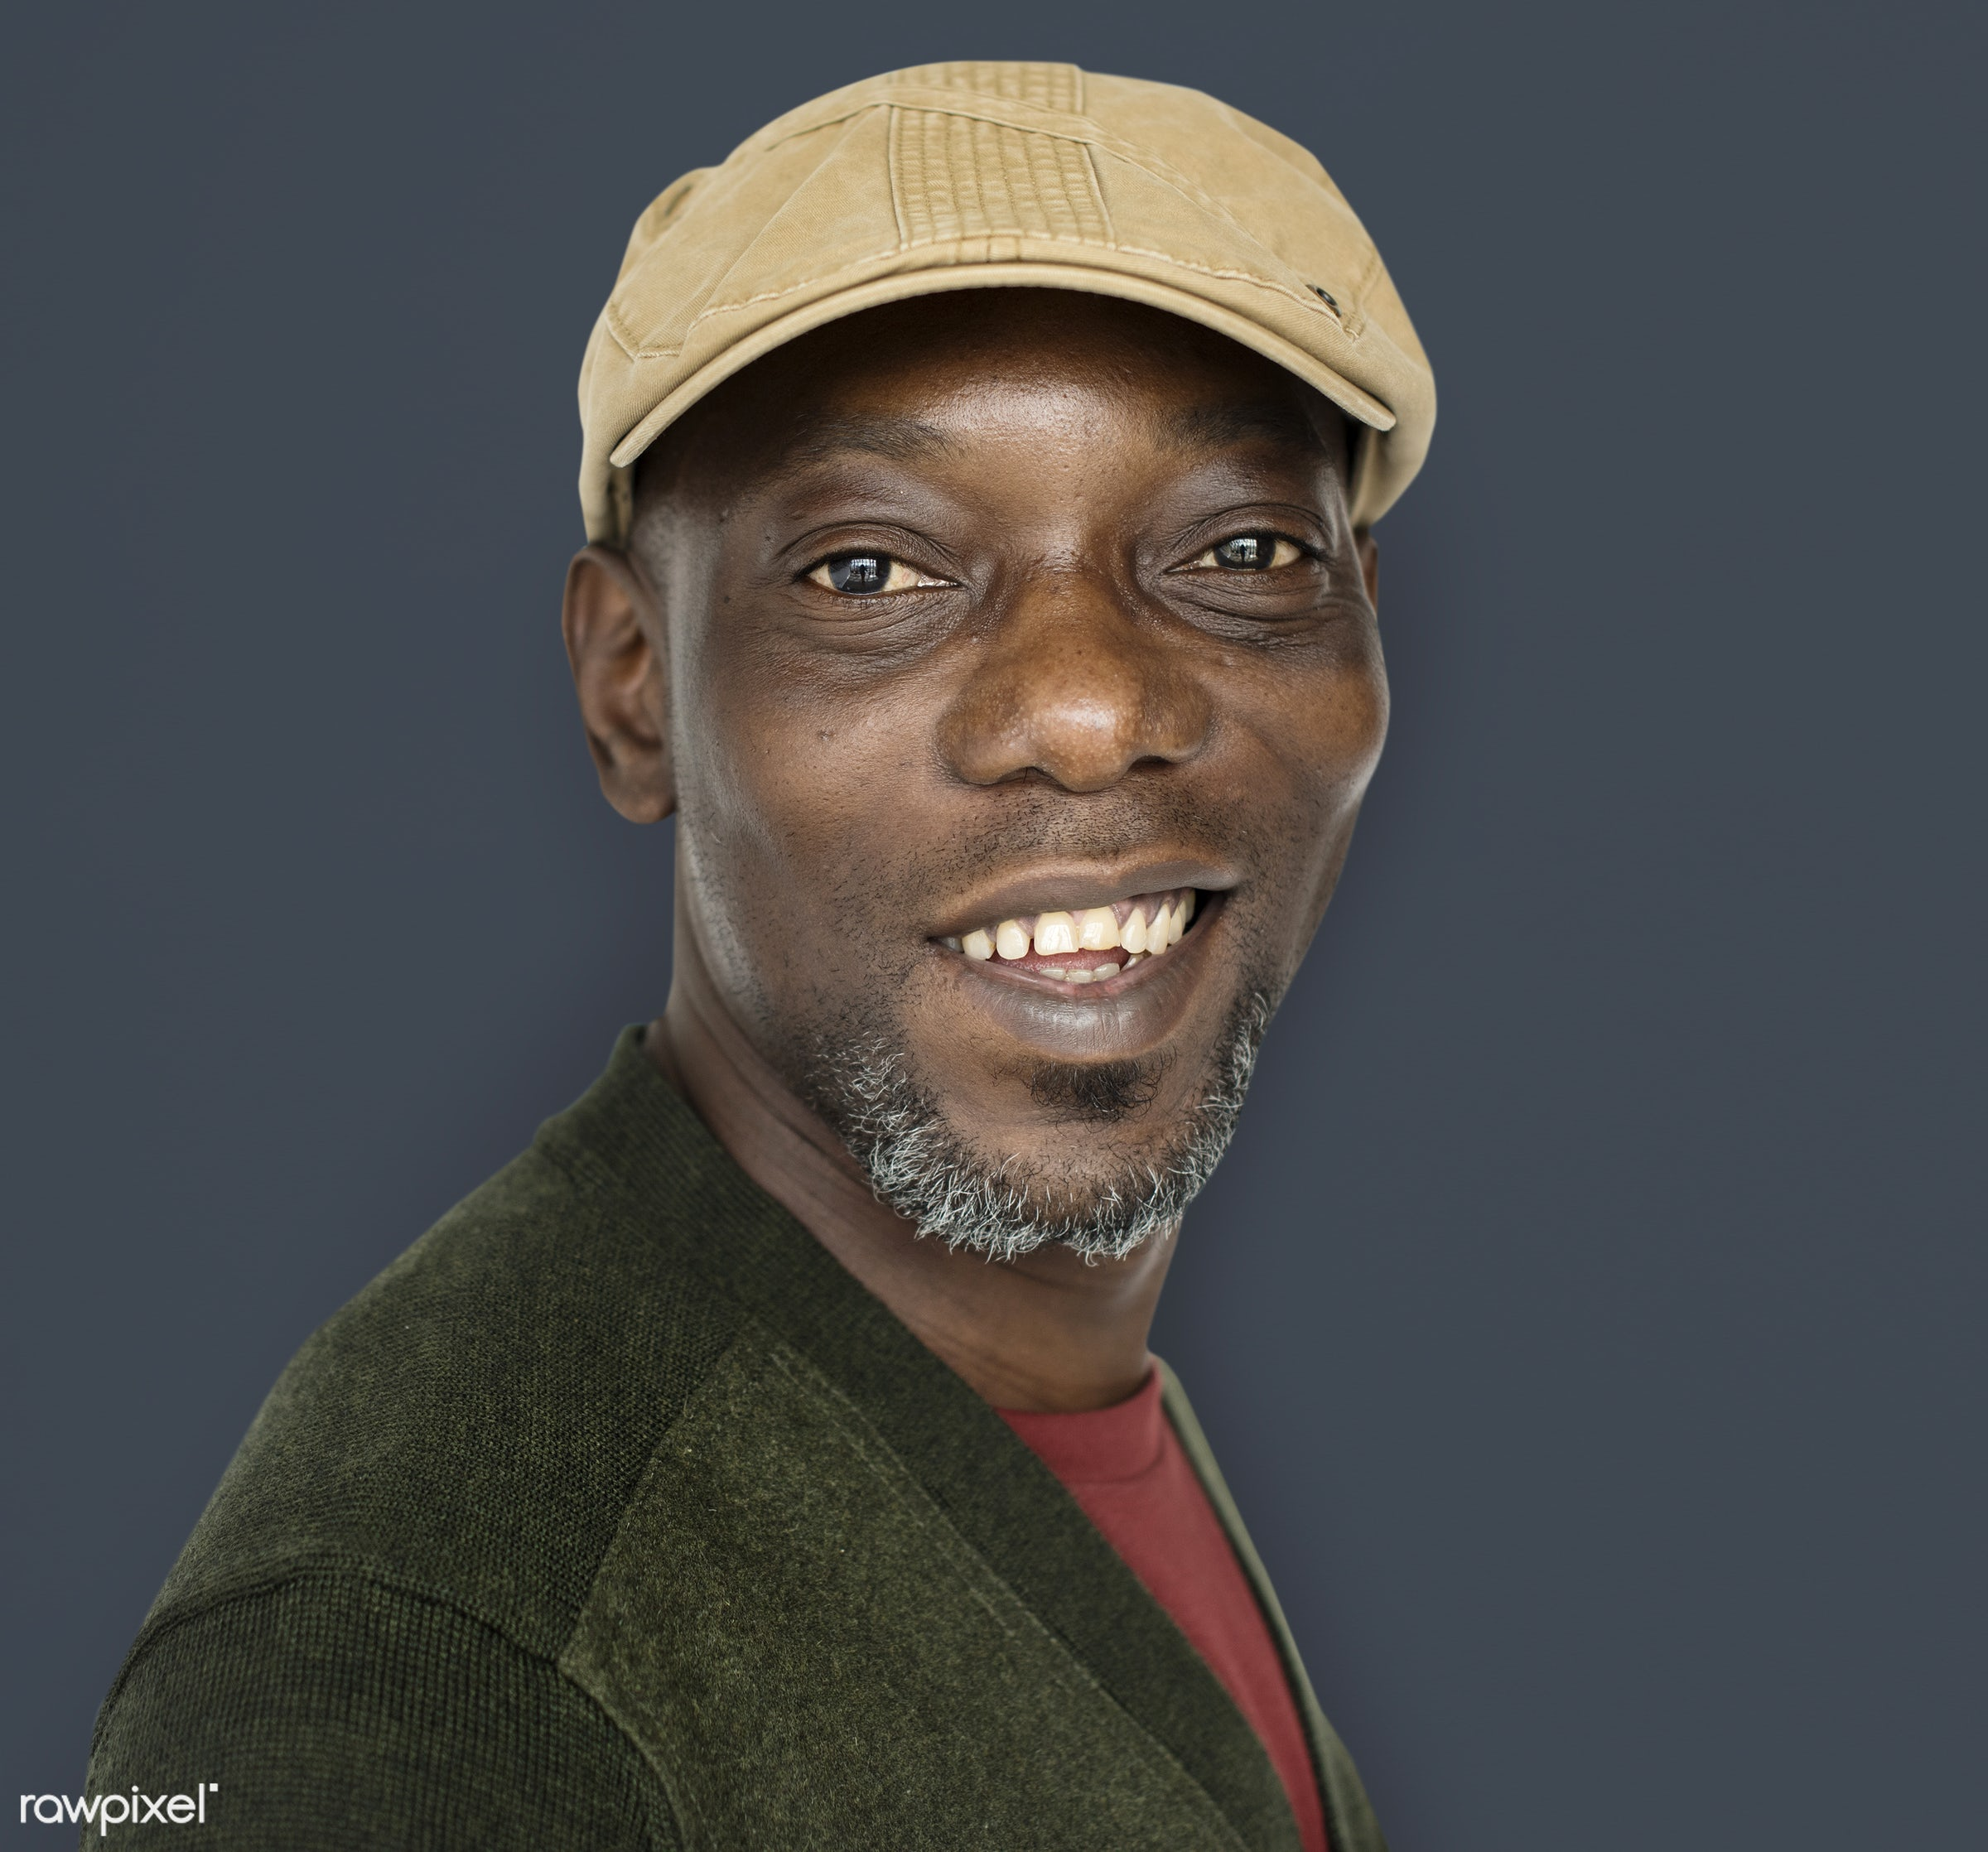 expression, old, person, joy, wearing hat, people, hat, joyous, happy, smile, cheerful, smiling, man, black, isolated,...